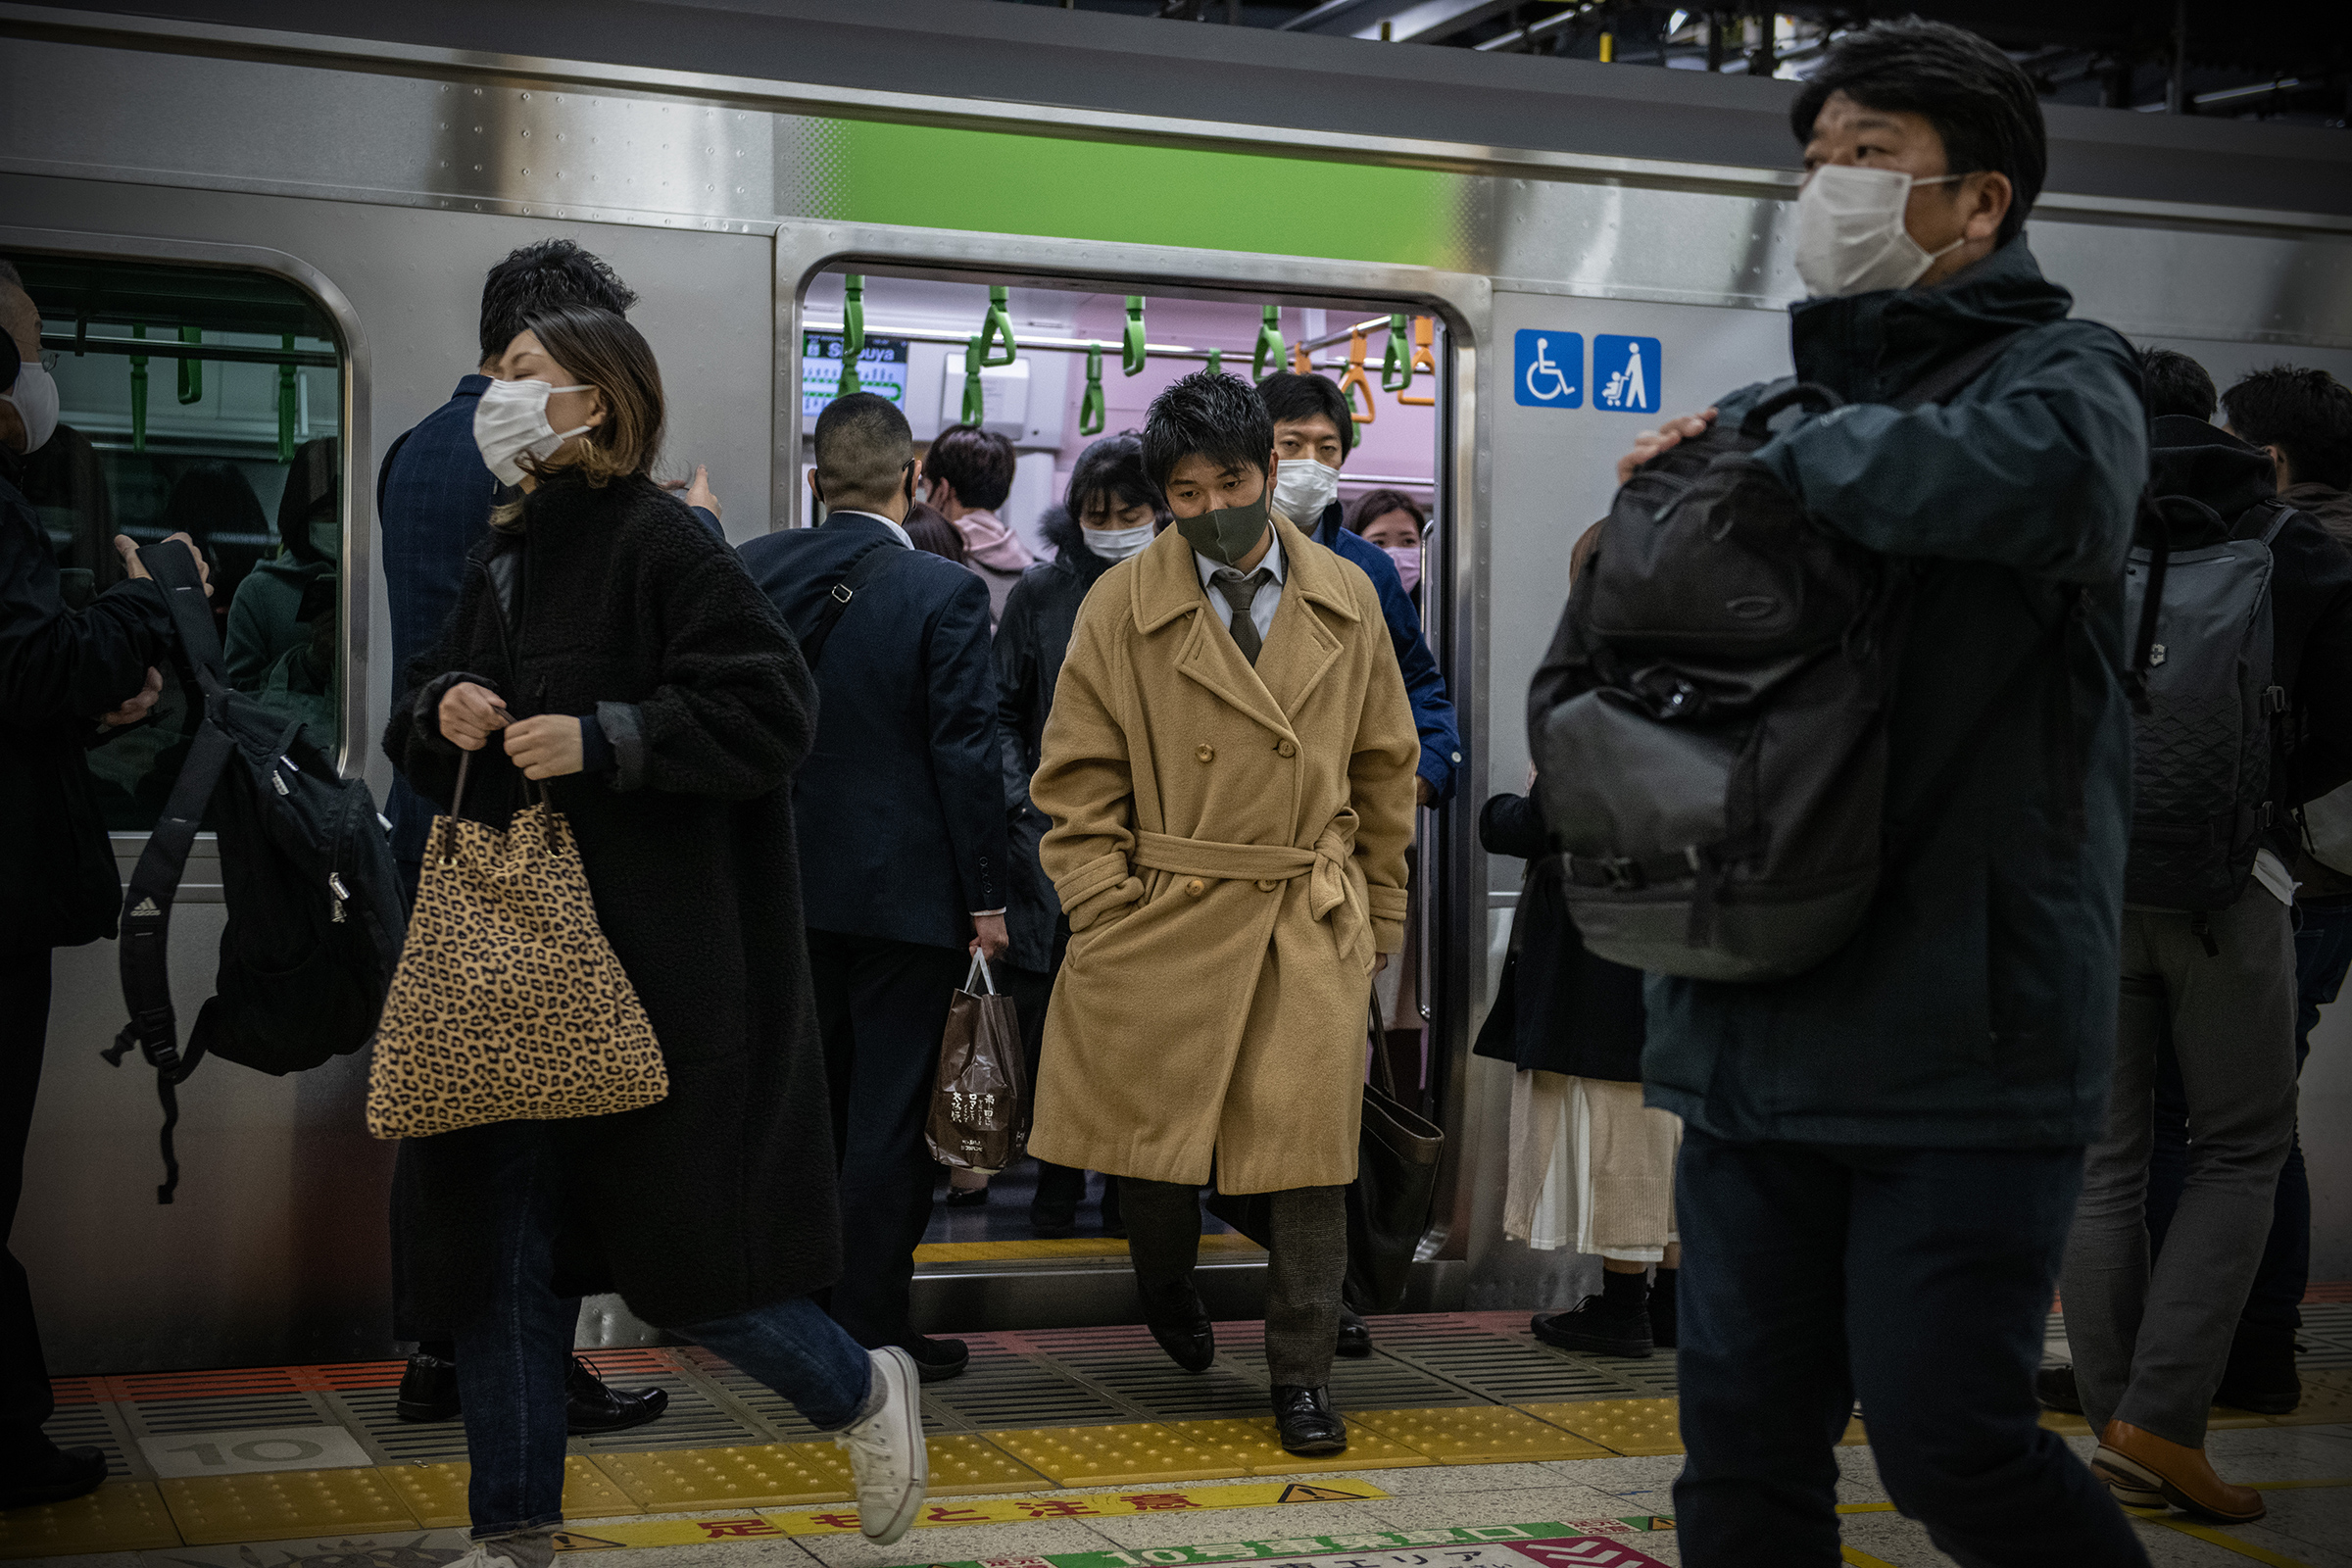 People wearing face masks disembark a Yamanote Line train on Dec. 16 in Tokyo